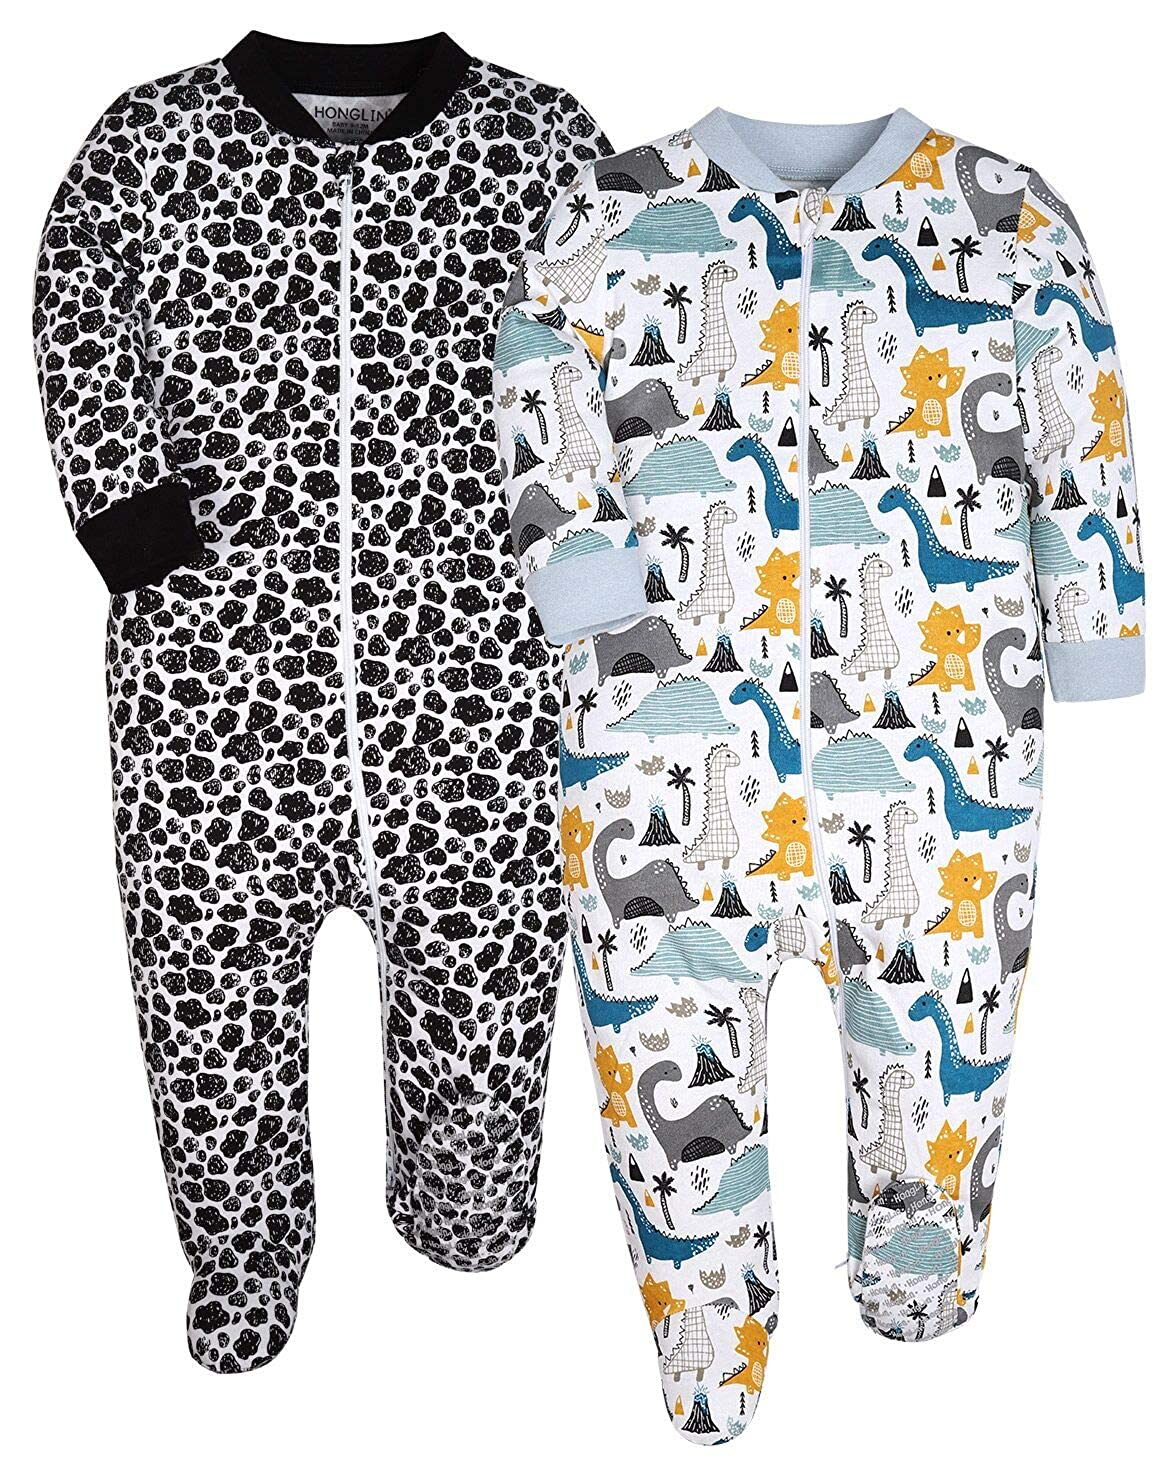 YXD Cute Baby Boys 2-Pack Footed Pajamas Toddler Sleepsuit Cotton Zipper Sleepers Infant Pjs Jumpsuit Sleepwear Clothes